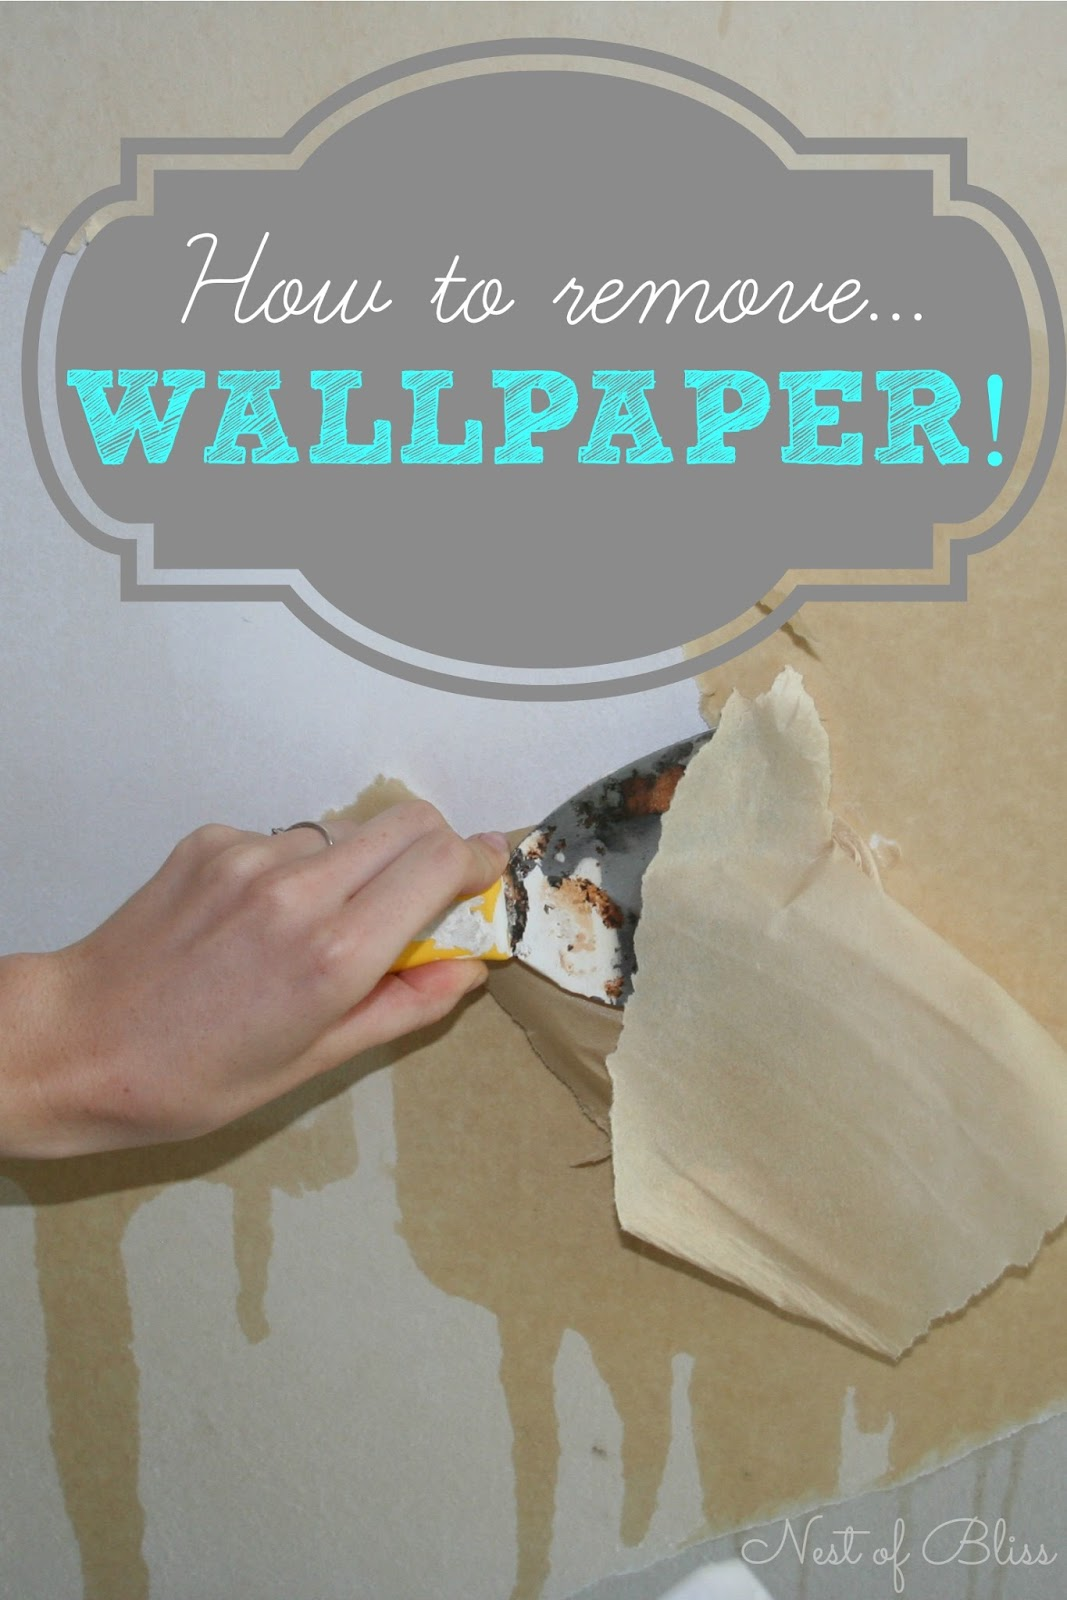 How To Remove Wallpaper - DIY - Nest of Bliss